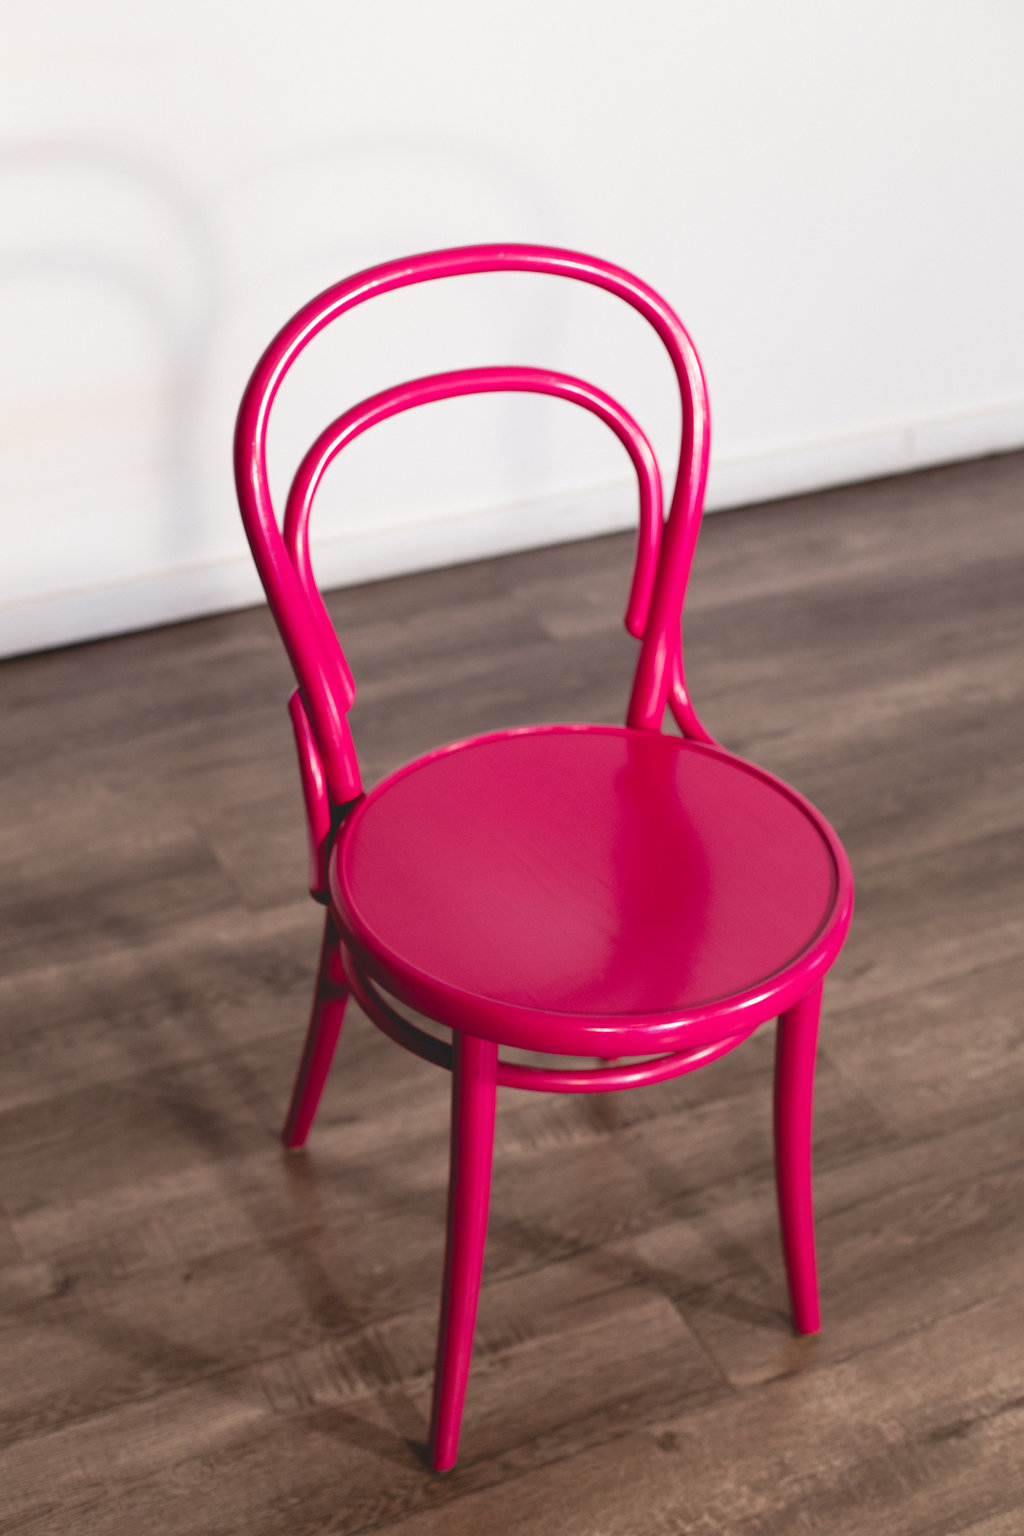 Pink Thonet Cafe Chair Quantity: 2 Price: $30 EA